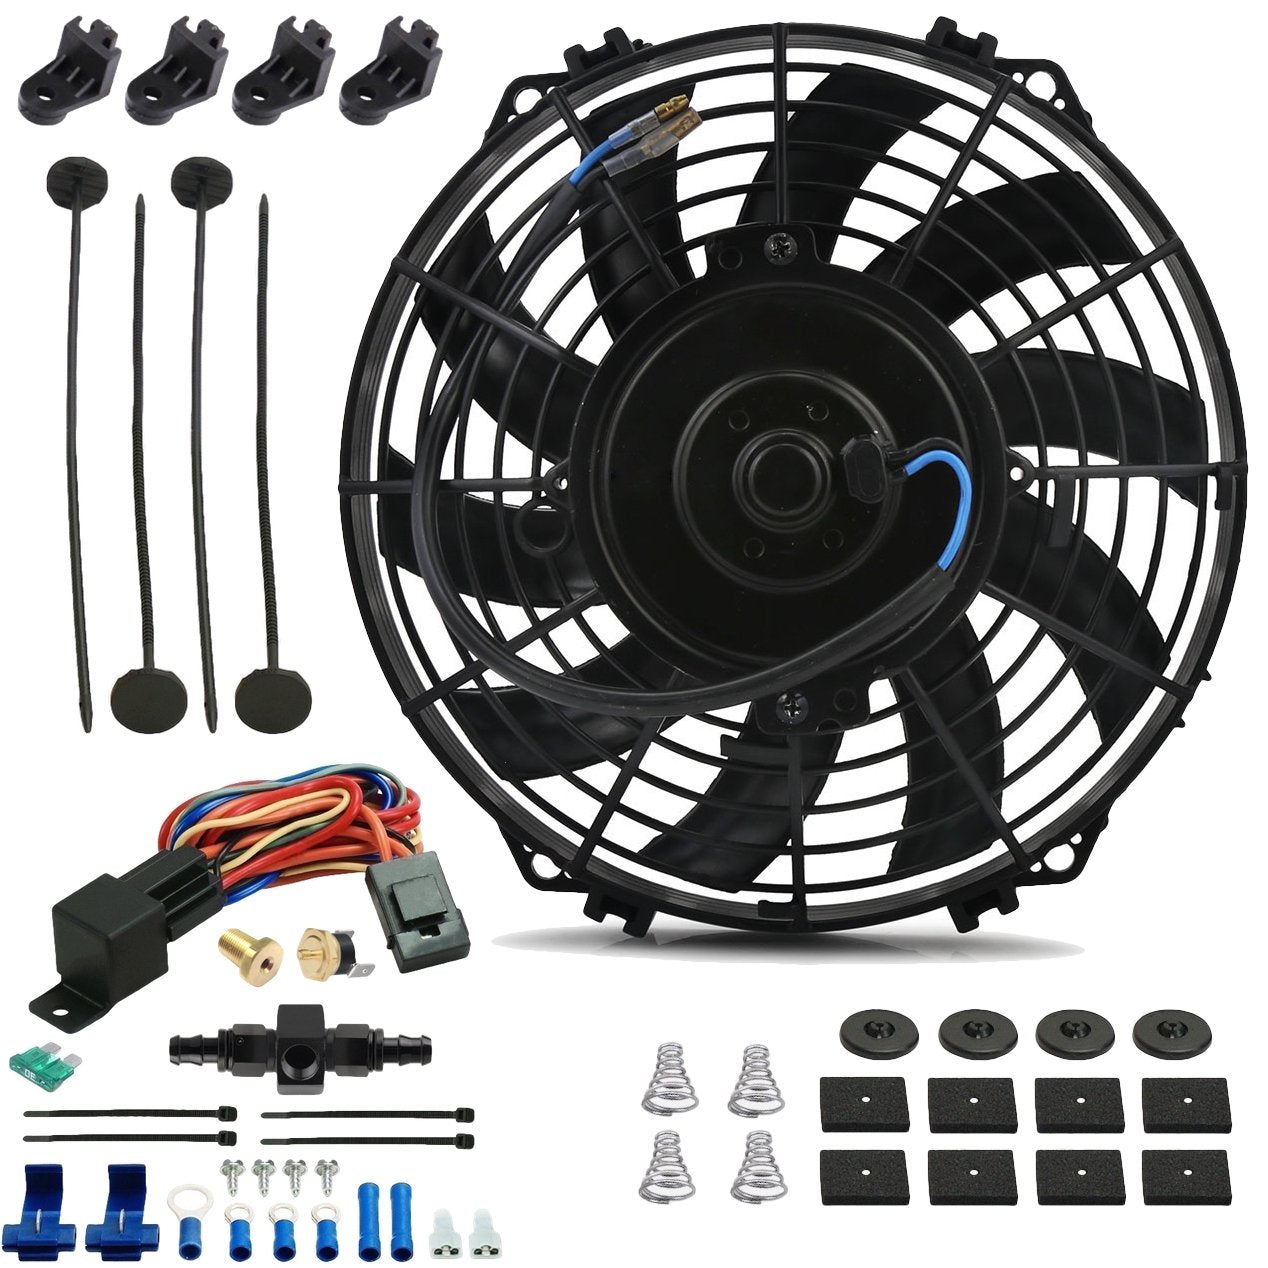 "9"" Inch Electric Engine Radiator Cooling Fan In-Line AN Hose Fitting Thermostat Temperature Switch Wire Kit-Single Electric Fans-American Volt-4AN-140'F On - 125'F Off-American Volt"